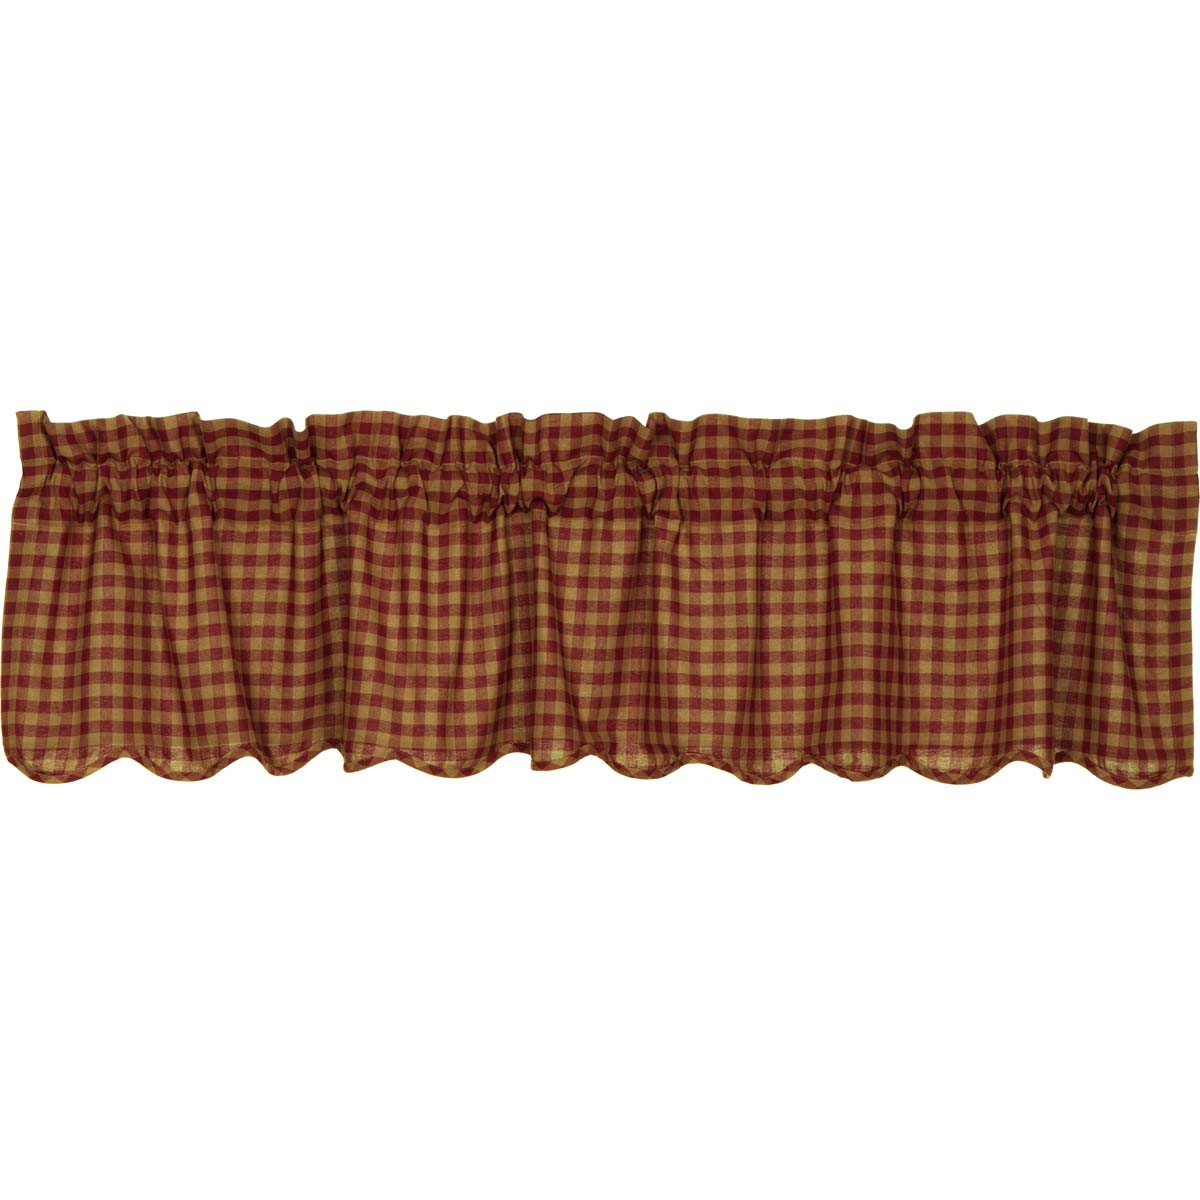 Burgundy Check Scalloped Valance 16x72 - Woodrol